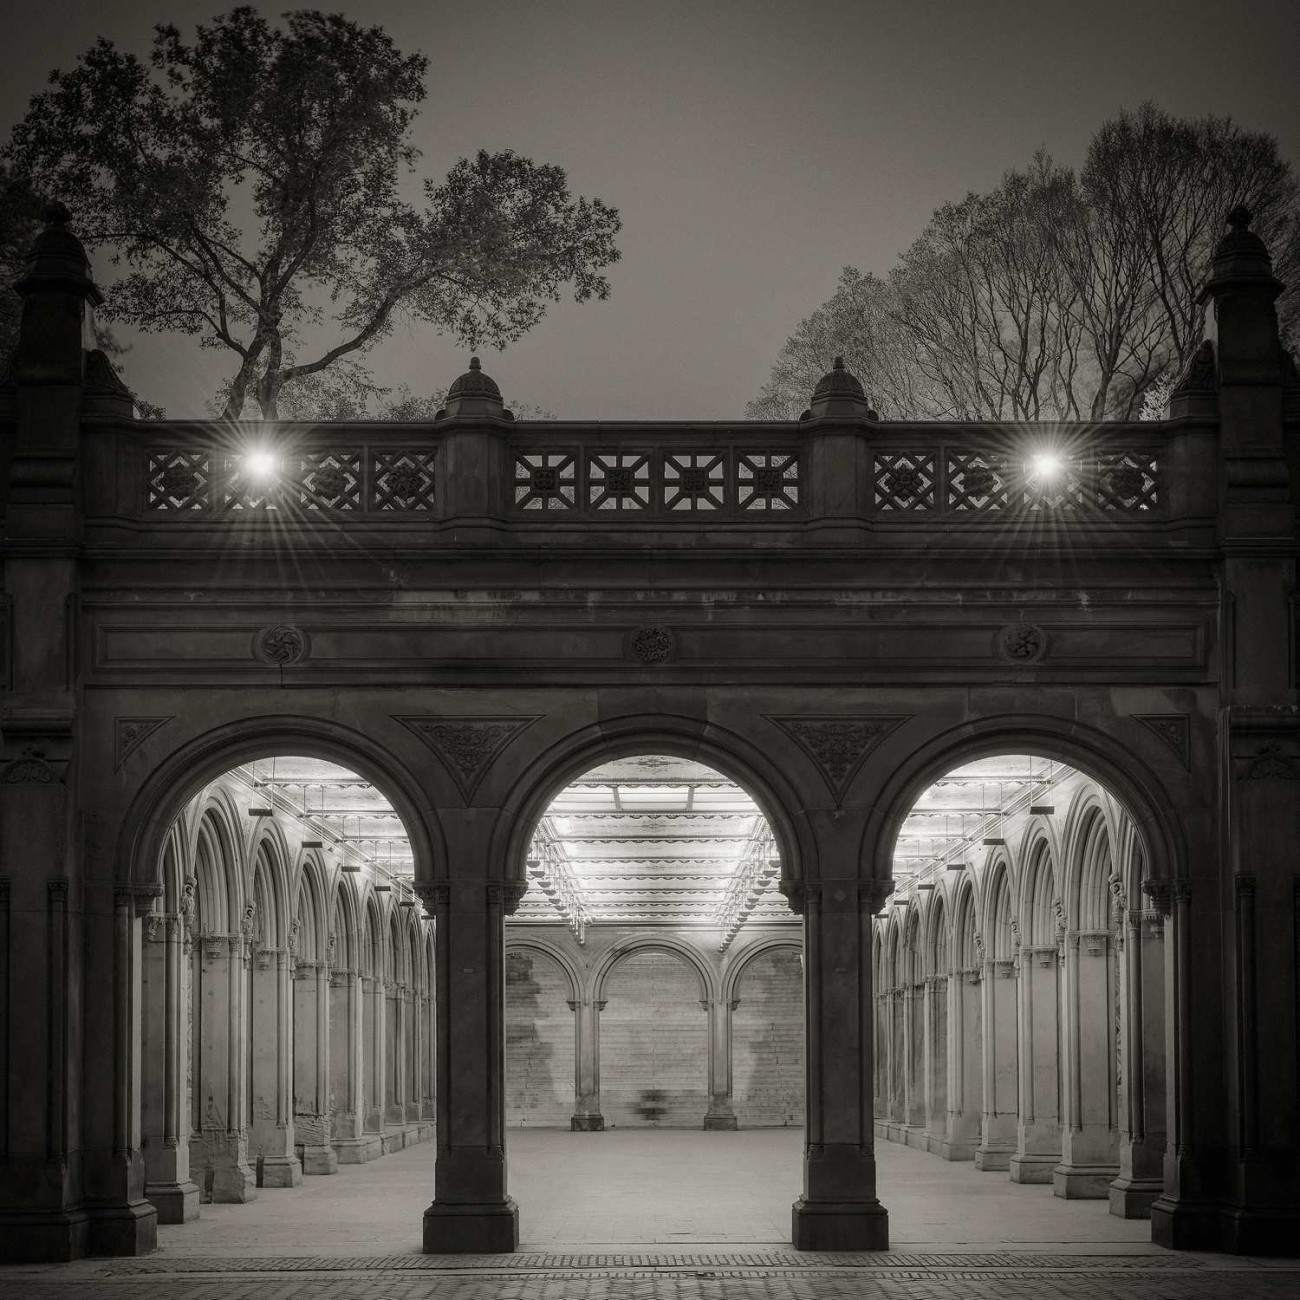 Bethesda Fountain arcade, Central Park, New York, 2013